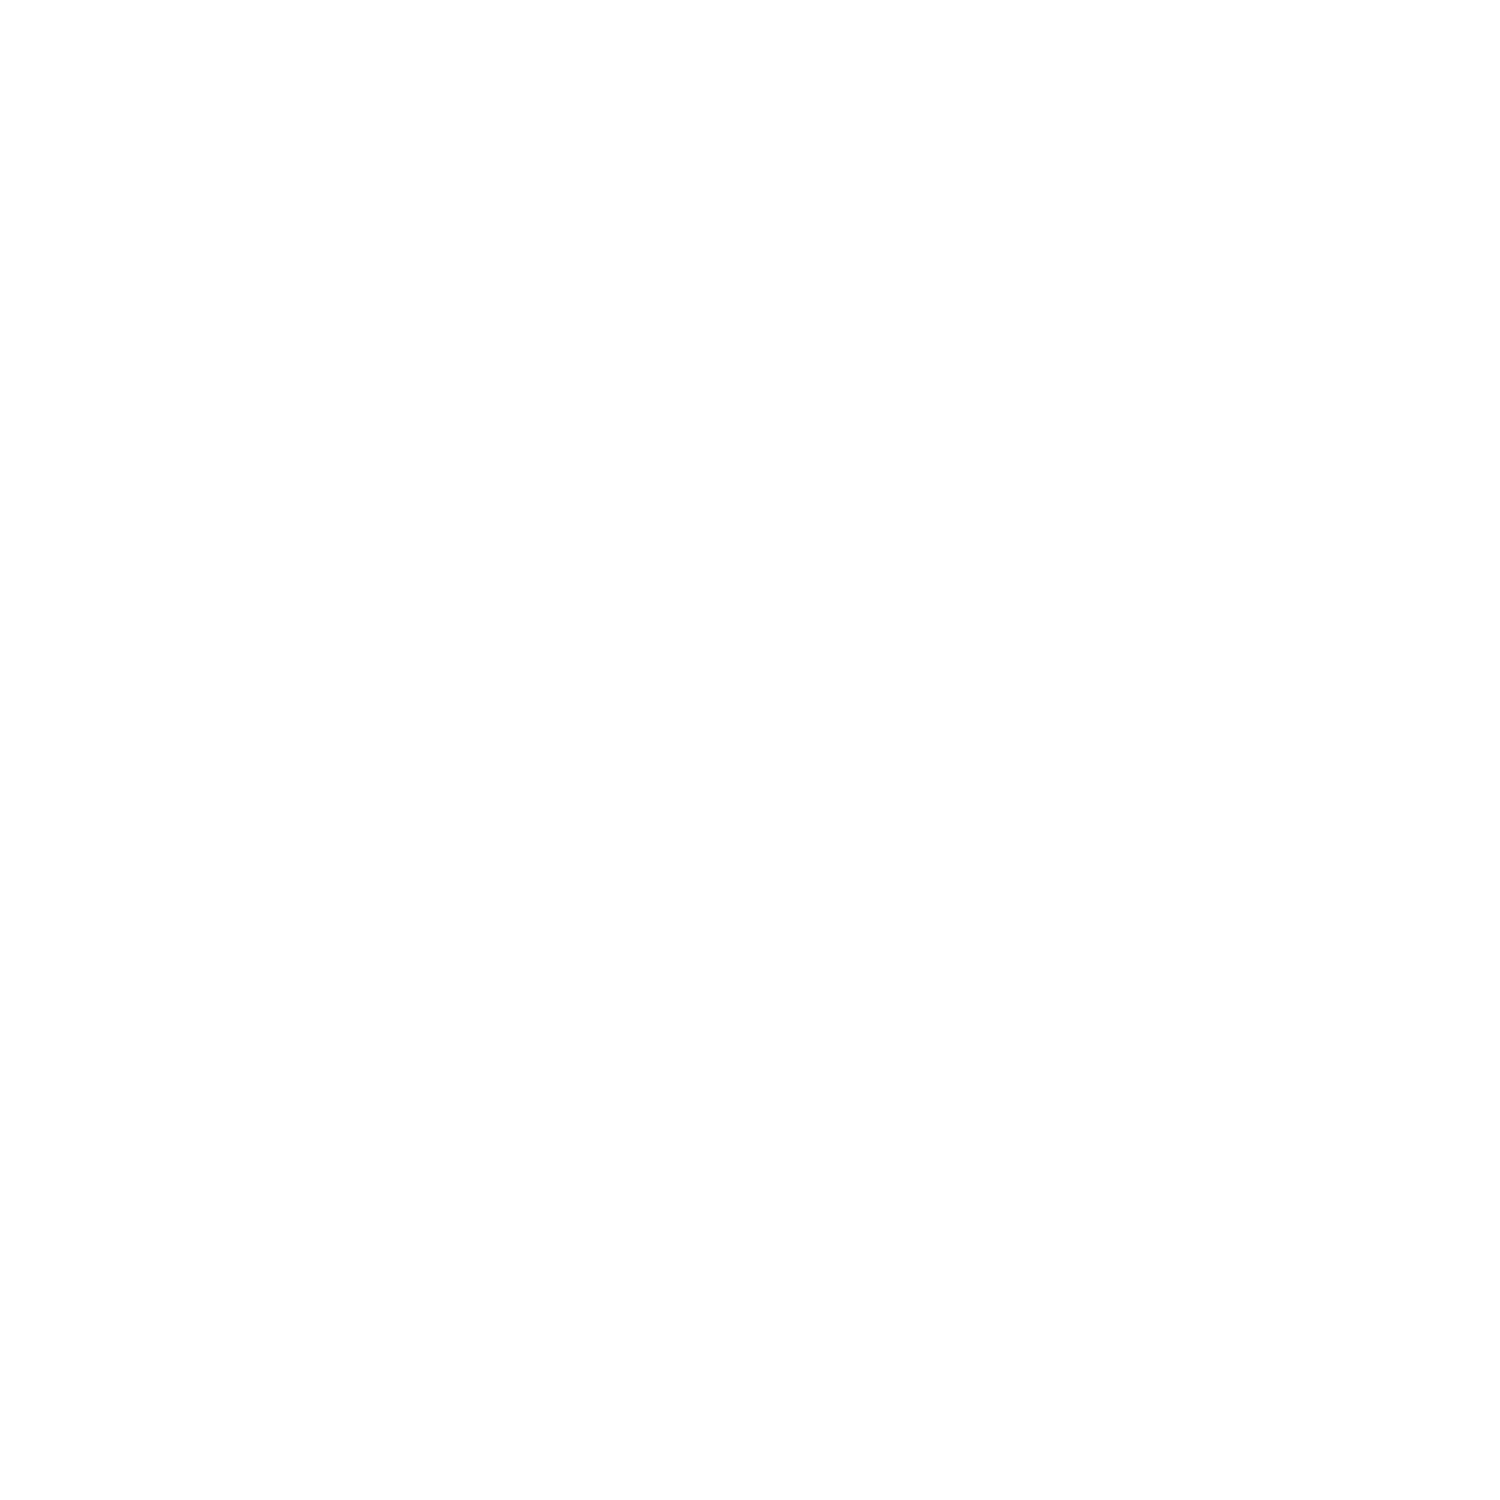 Clear Vista Counseling (704)912-1074